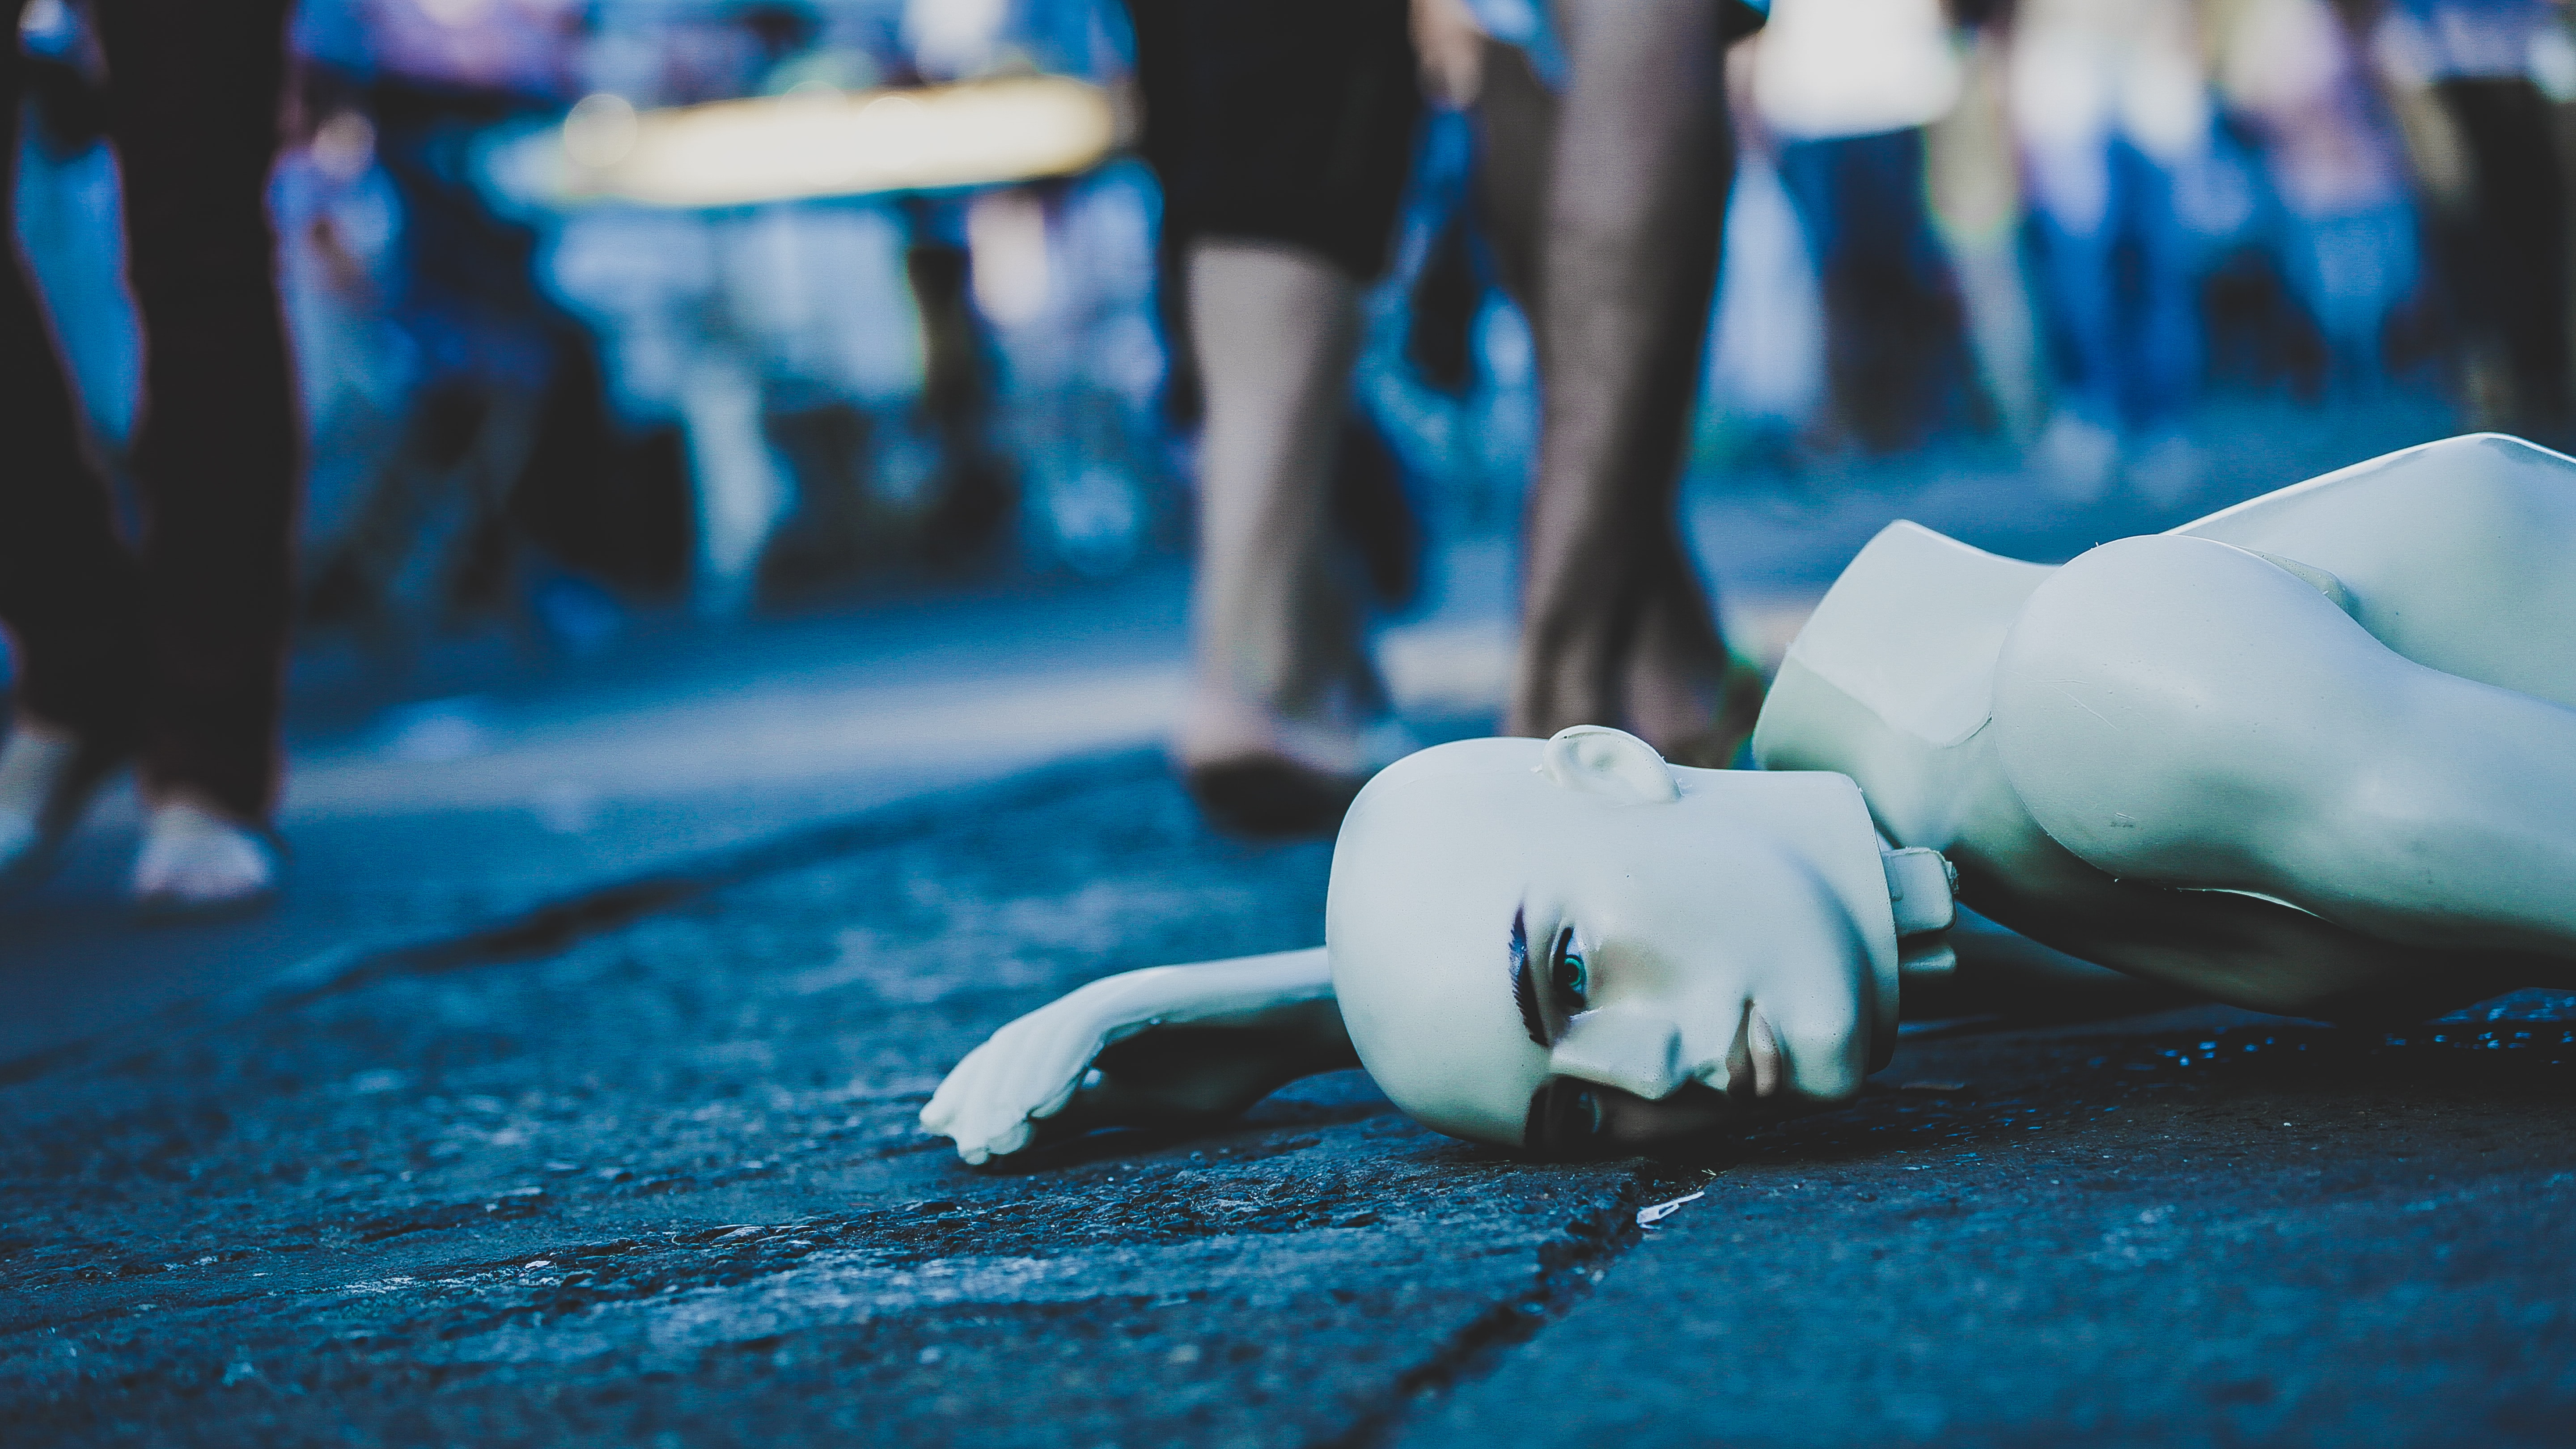 A broken mannequin laying on the street in Taguatinga